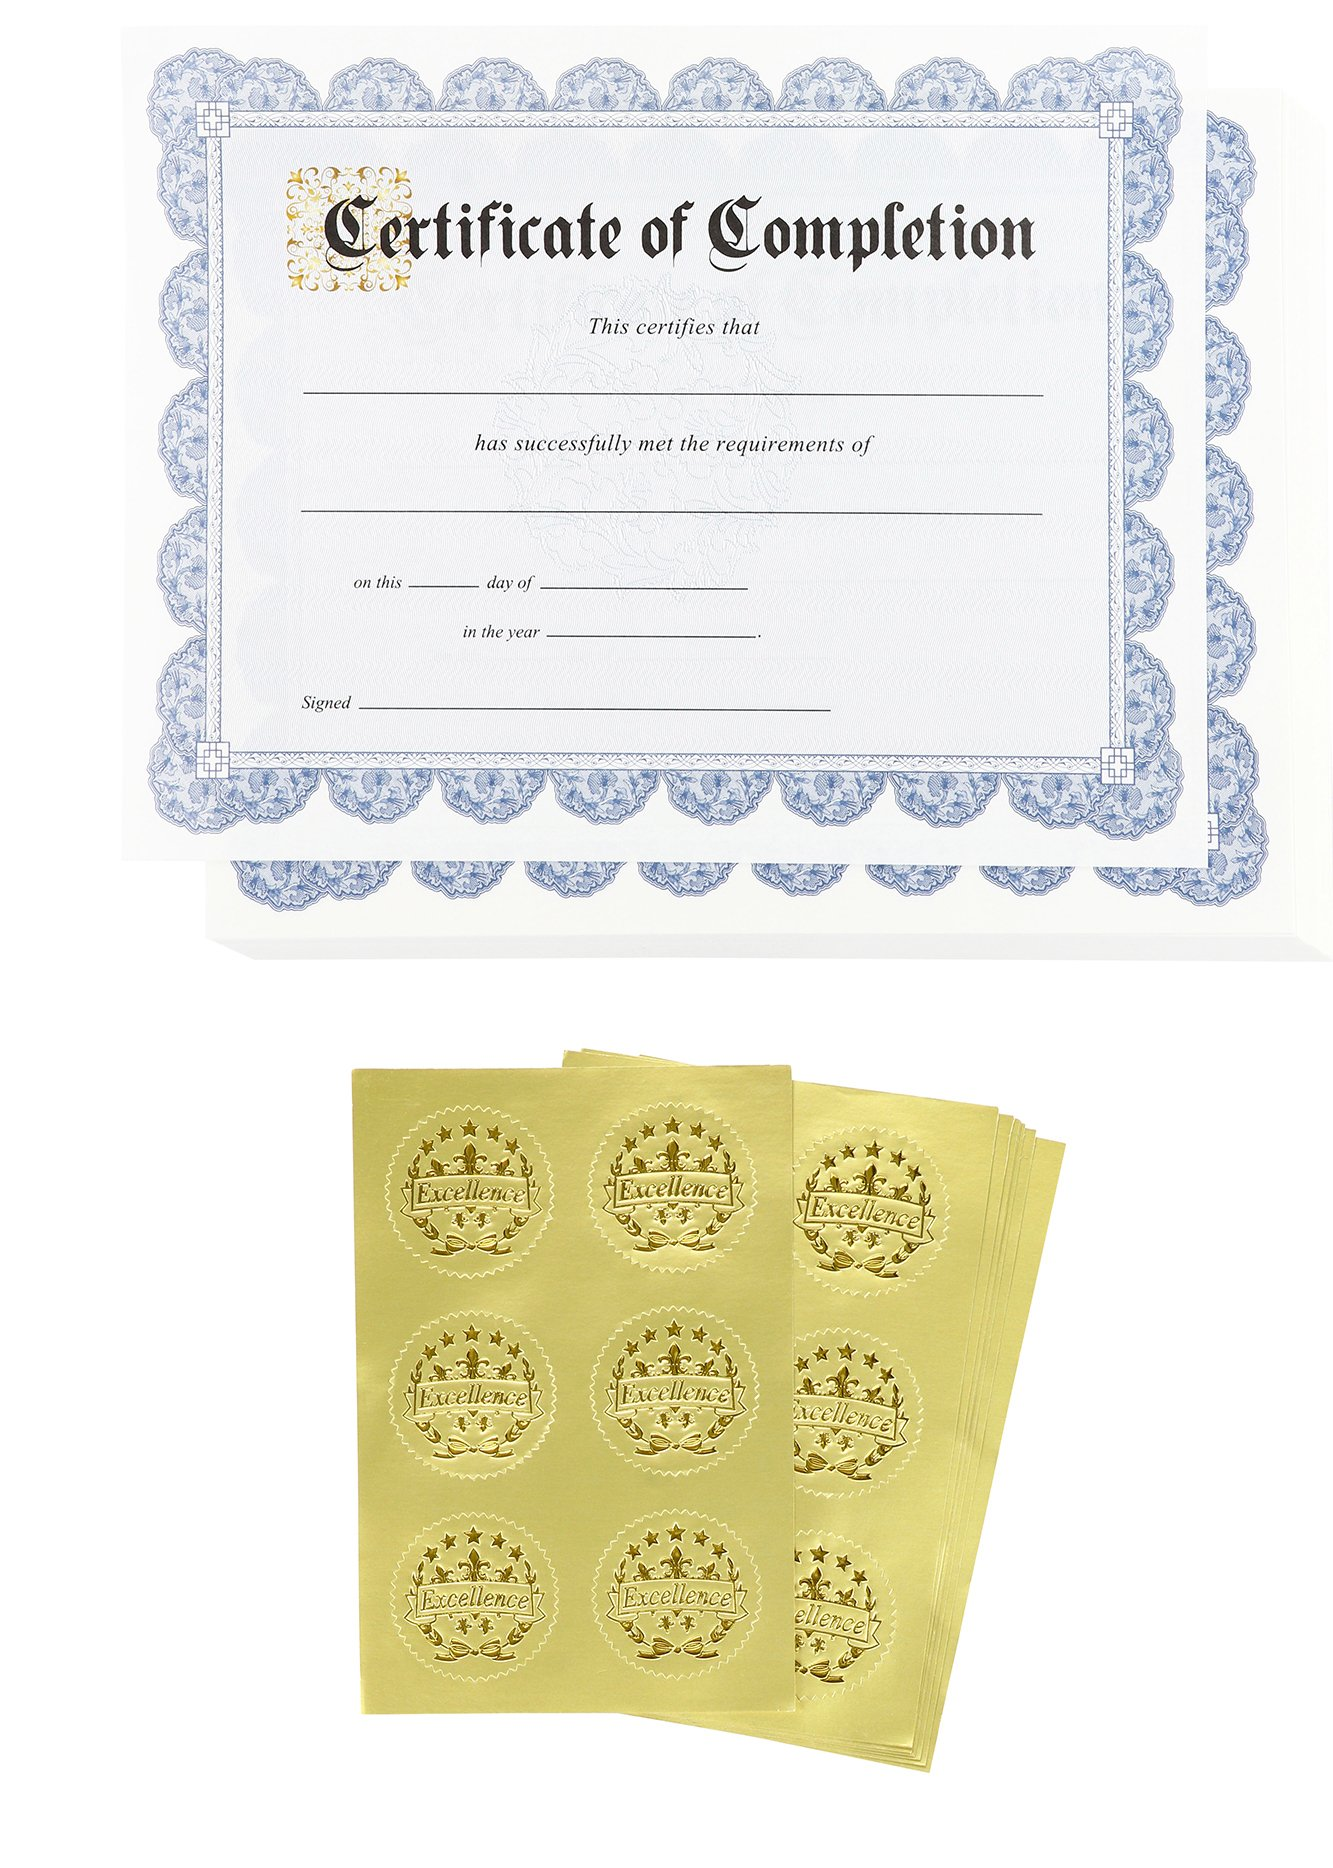 Certificate Papers – 48 Certificate of Completion Award Certificates with 48 Excellence Gold Foil Seal Stickers, for Student, Teacher, Professor, Blue, 8.5 x 11 inches